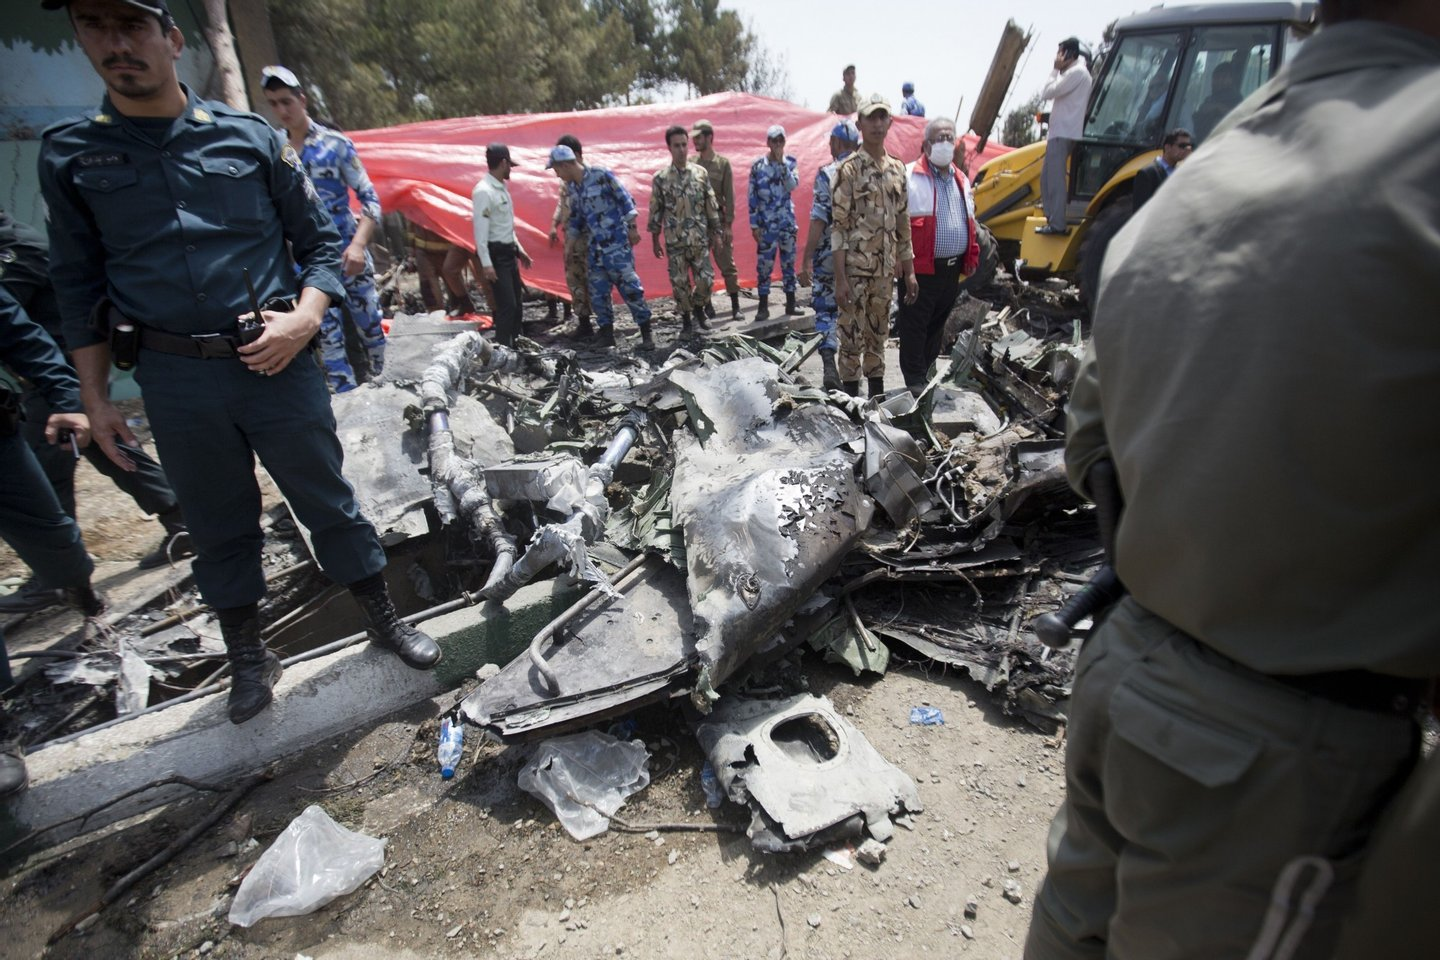 Iranian security forces secure the scene of a plane crash near Tehran's Mehrabad airport on August 10, 2014. An Iranian passenger plane crashed moments after takeoff from Tehran, killing at least 38 people on board and narrowly avoiding many more deaths when it plummeted to earth near a busy market. AFP PHOTO/BEHROUZ MEHRI        (Photo credit should read BEHROUZ MEHRI/AFP/Getty Images)